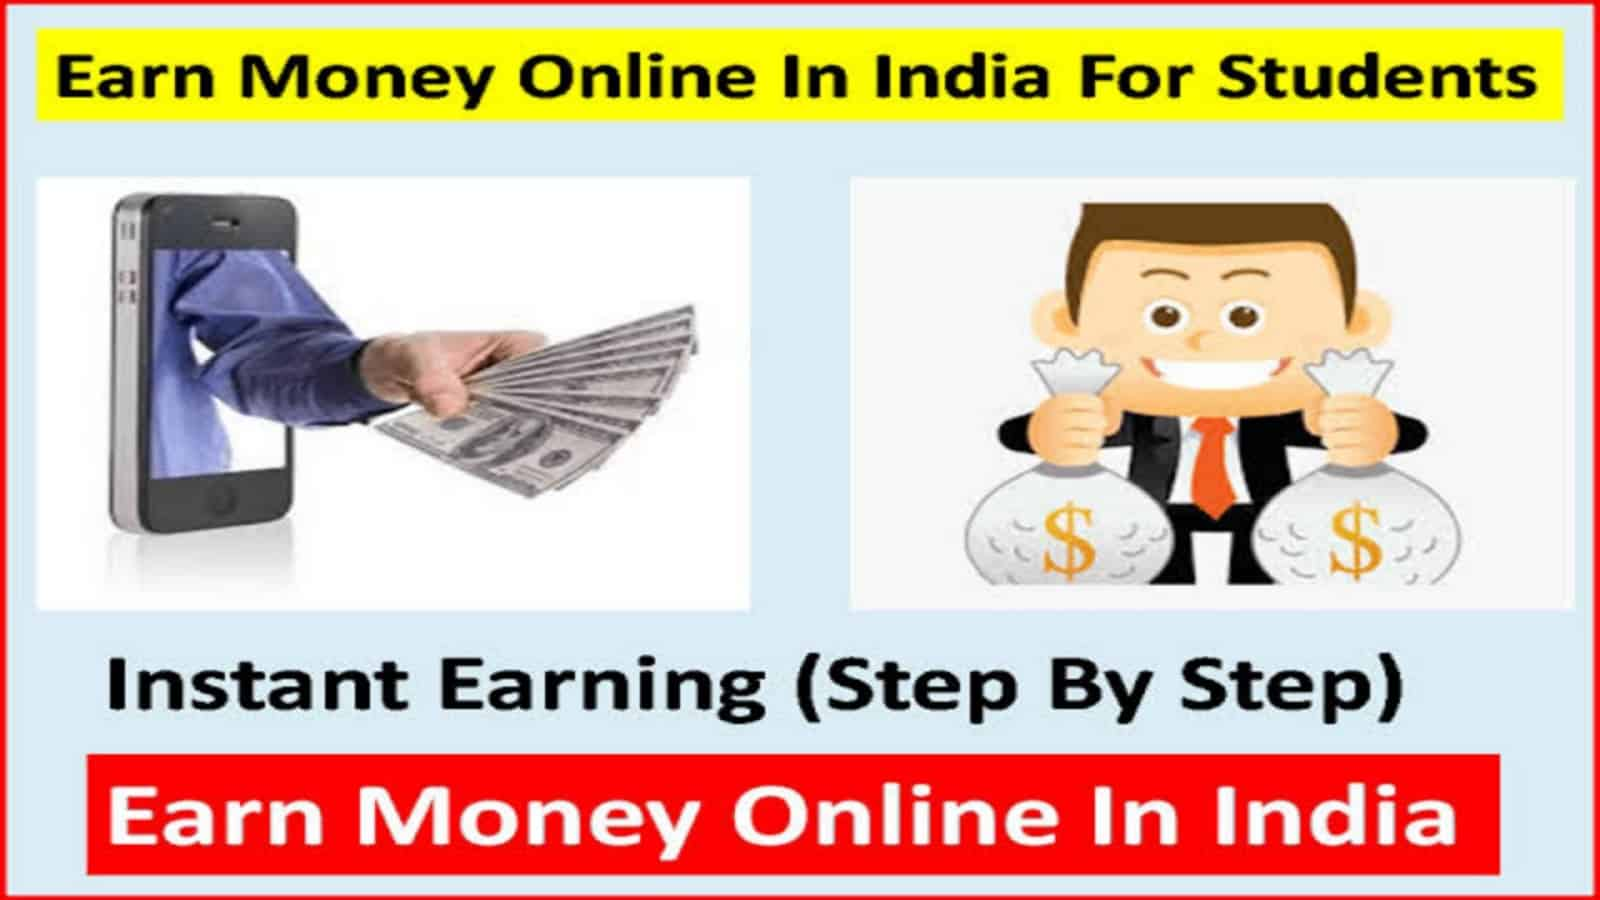 Earn Money Online in India for Students